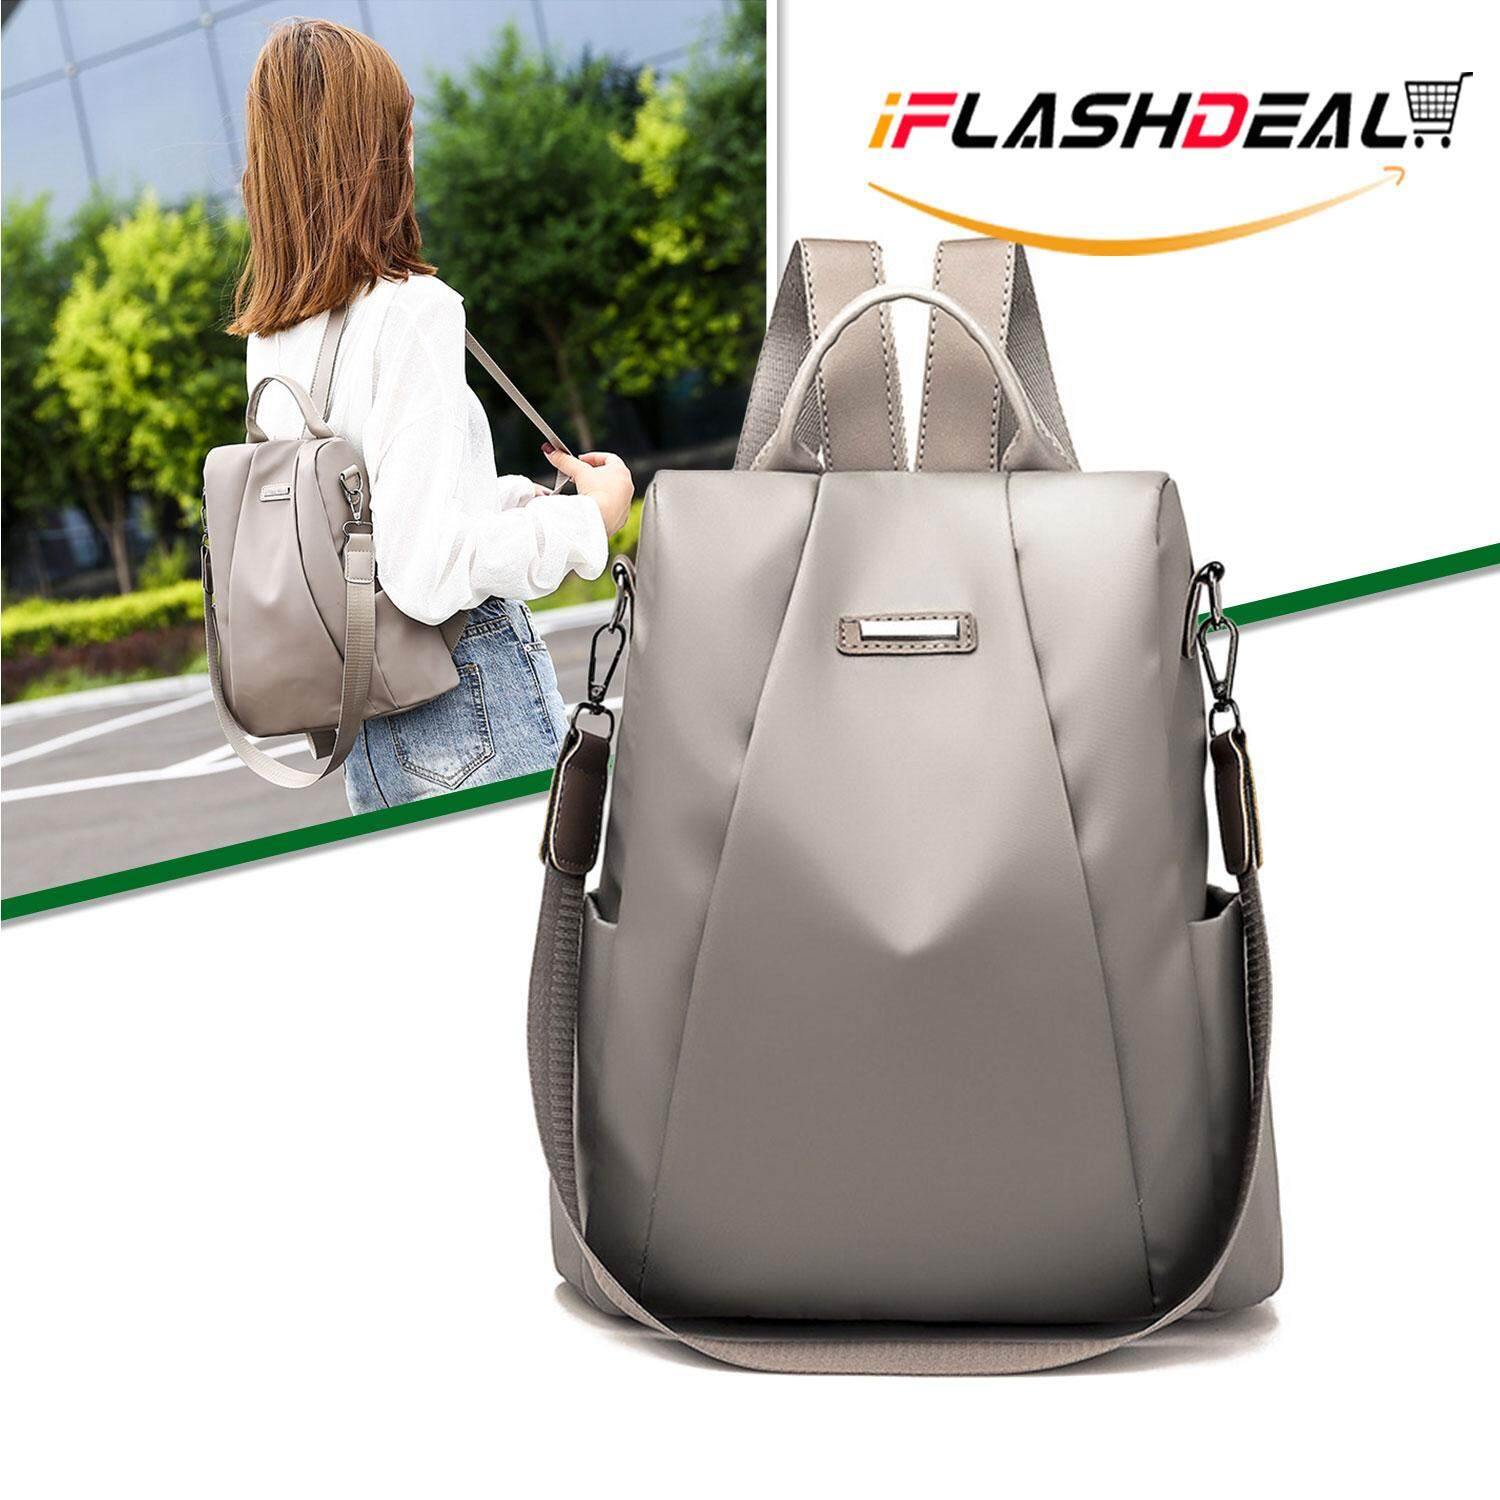 6186a82bfe iFlashDeal Backpack Women Shoulder Bag Travel School Mini Korean Anti Theft Back  Pack Handbag Sling Bag